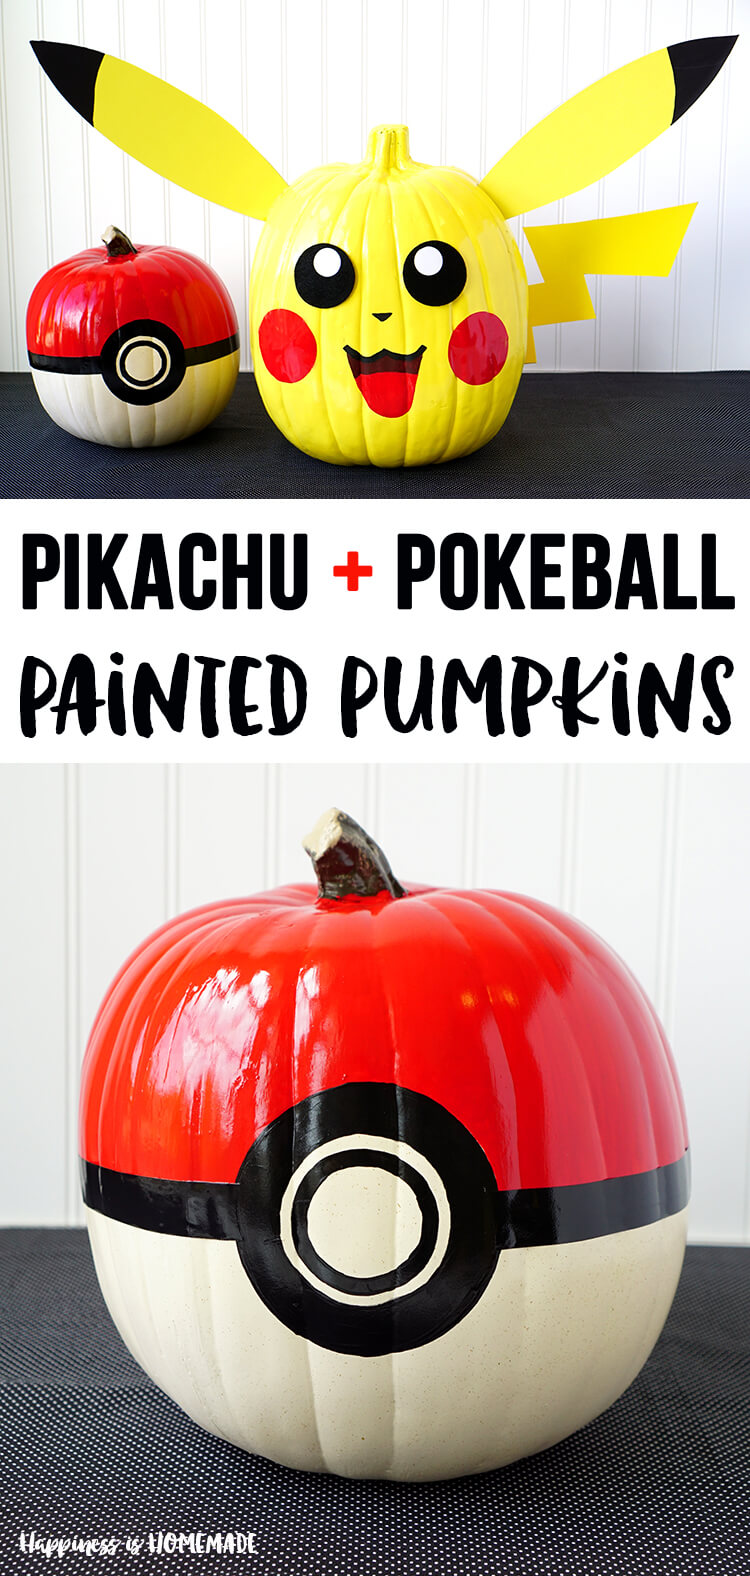 how-to-make-pikachu-and-pokeball-pokemon-pumpkins-for-halloween